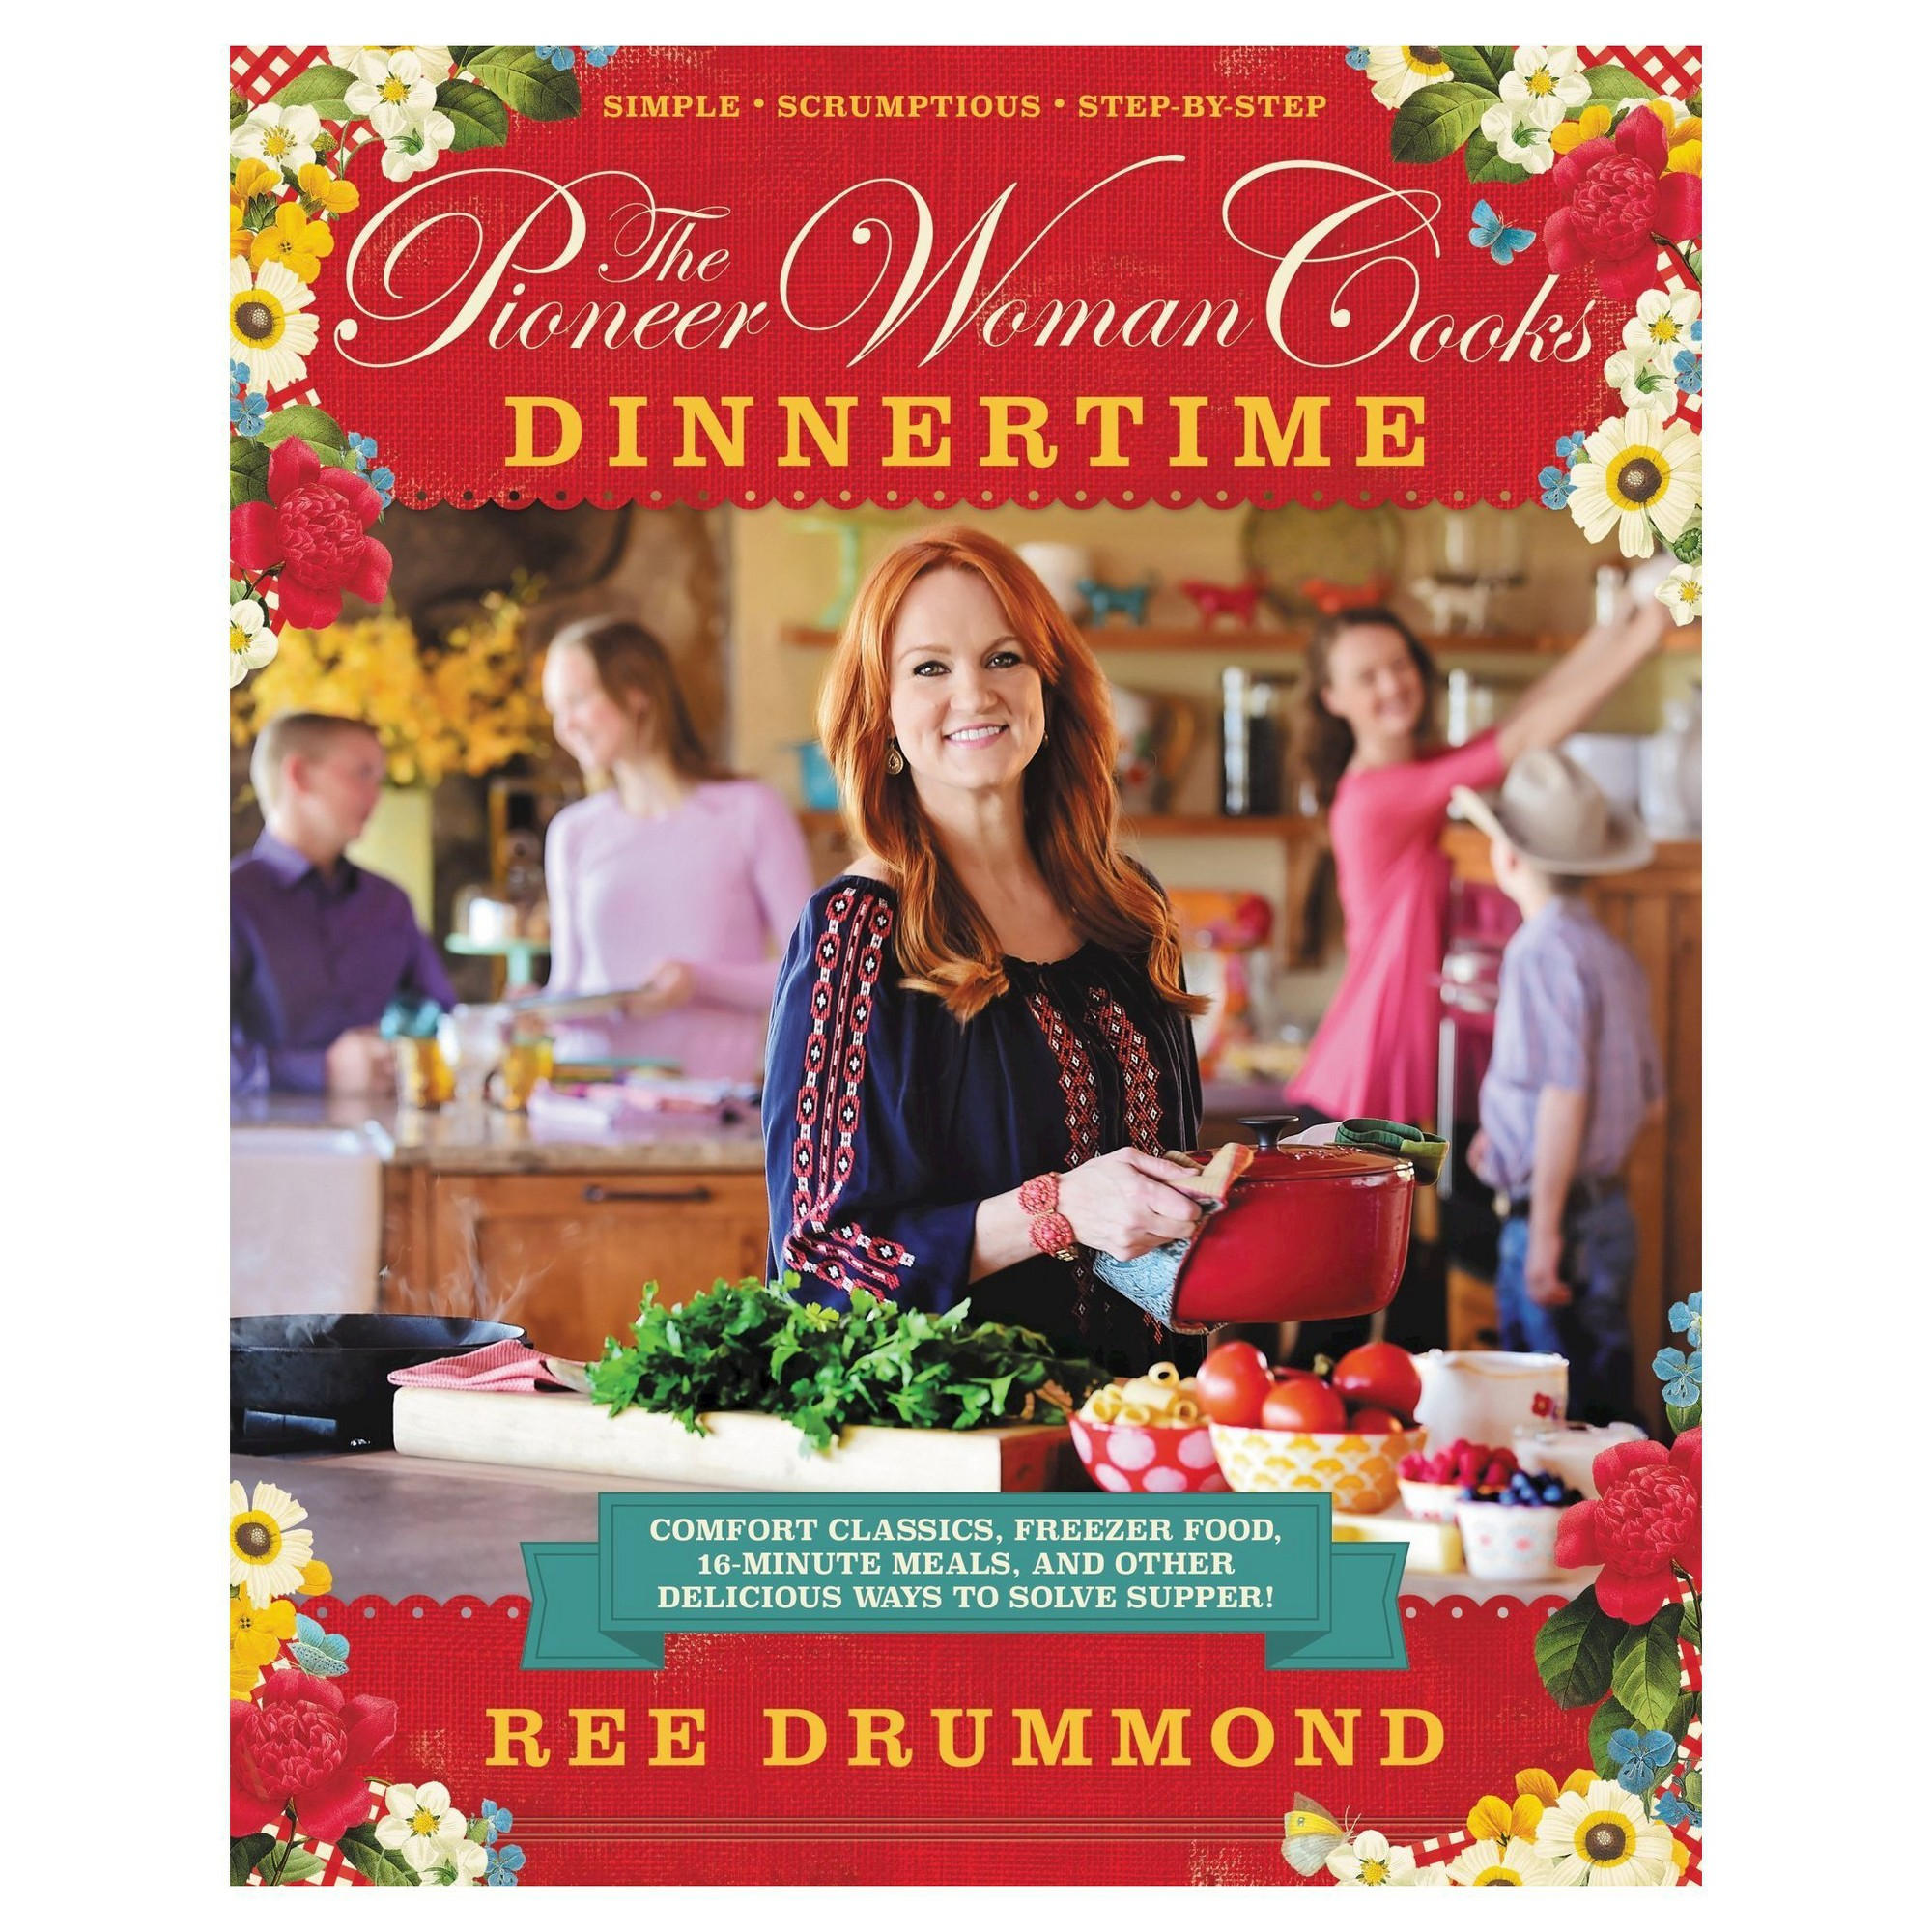 The Pioneer Woman Cooks: Dinnertime (Hardcover) by Ree Drummond